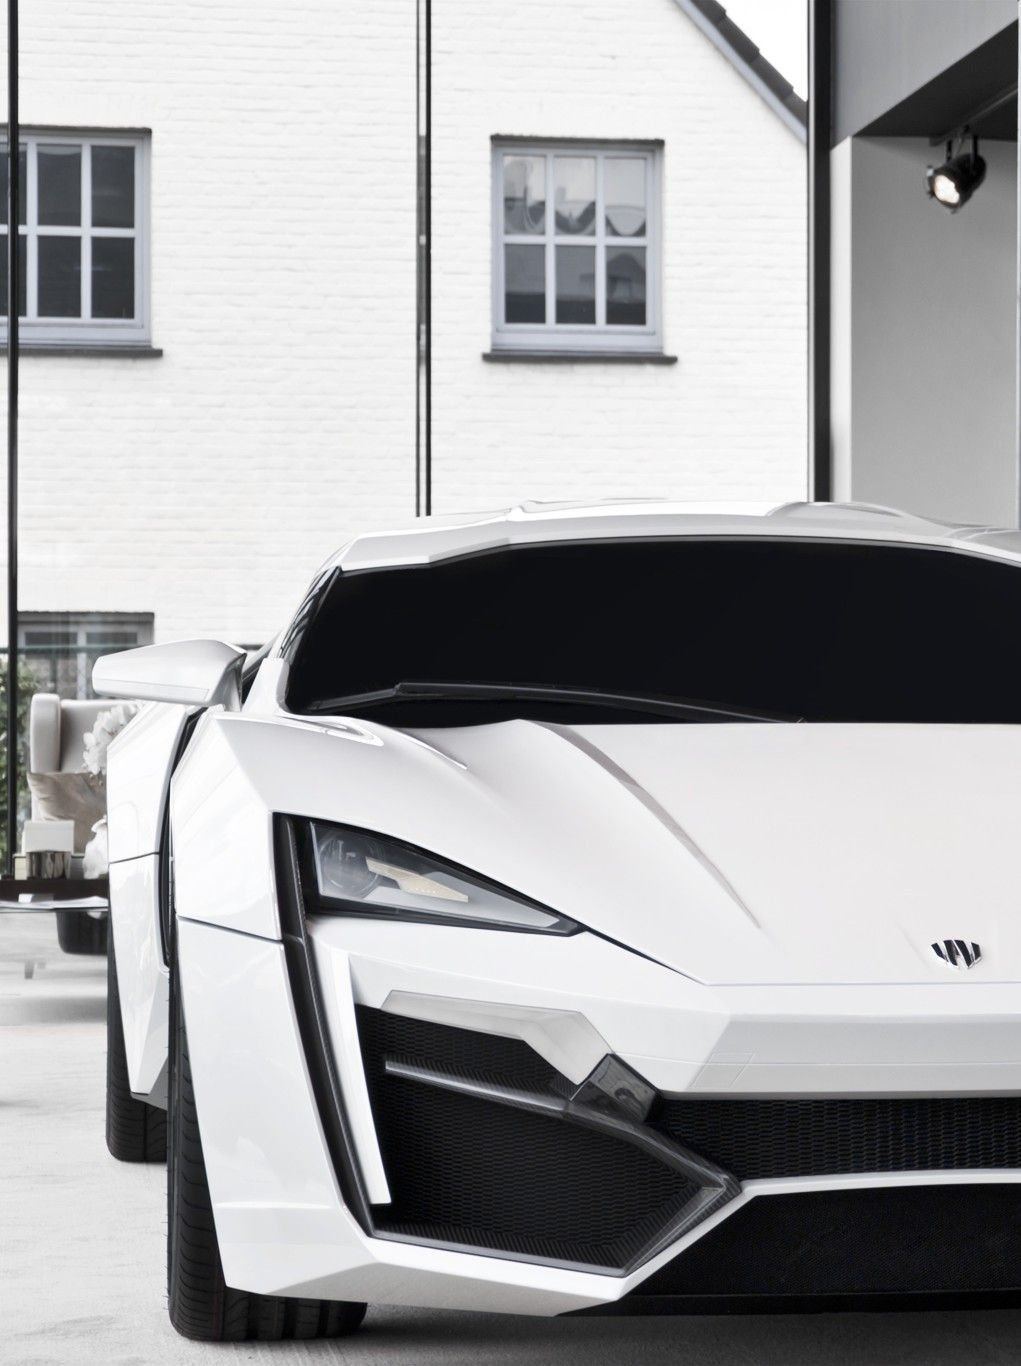 Luxury Car Rental Phila Limo Car Service Phila Private Jets Lykan Hypersport Luxury Cars Sports Cars Luxury